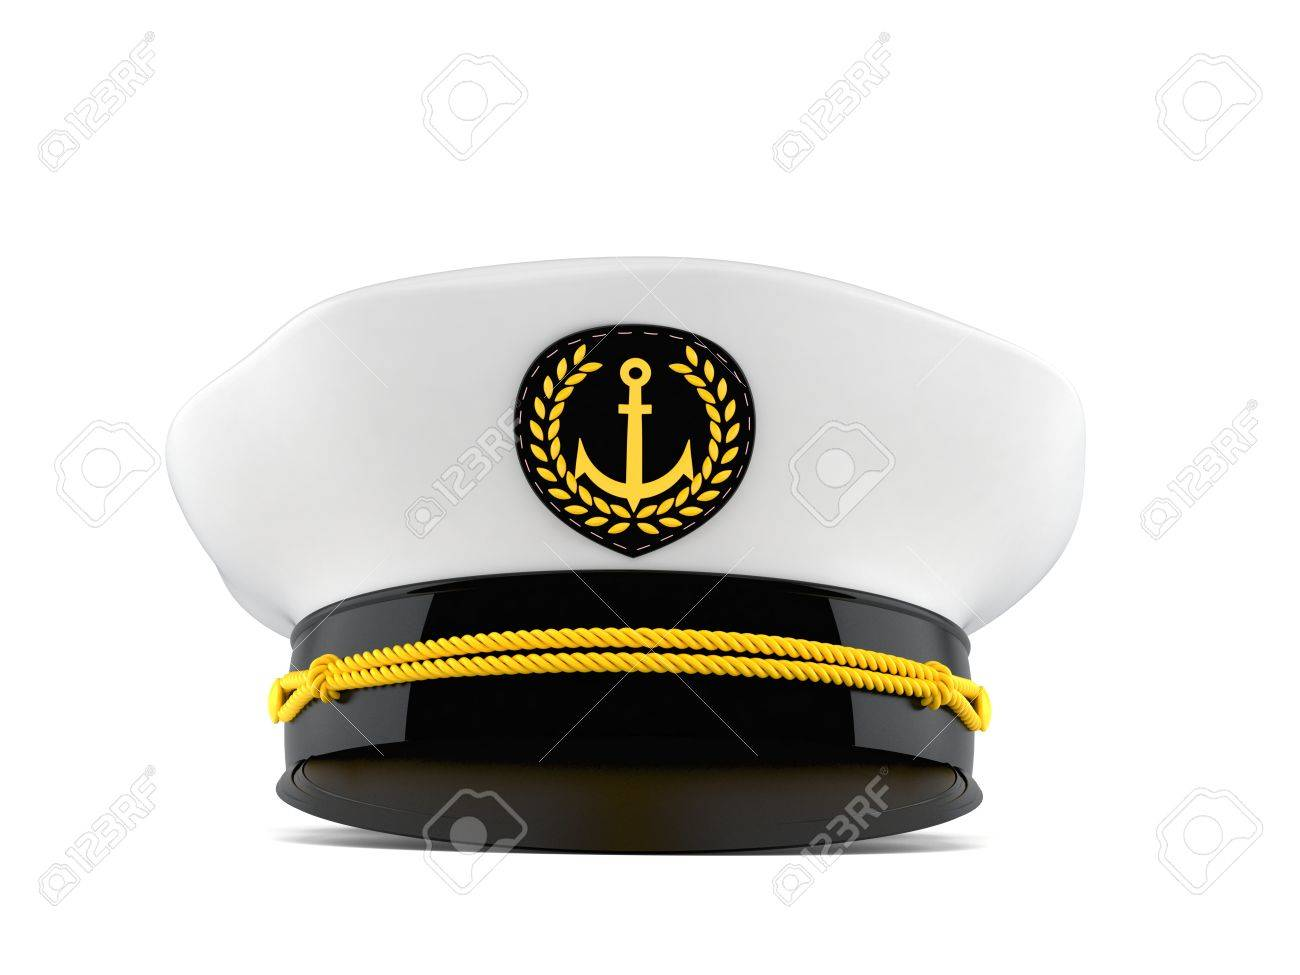 aaf4fec6dfe Captain s hat isolated on white background Stock Photo - 83704463